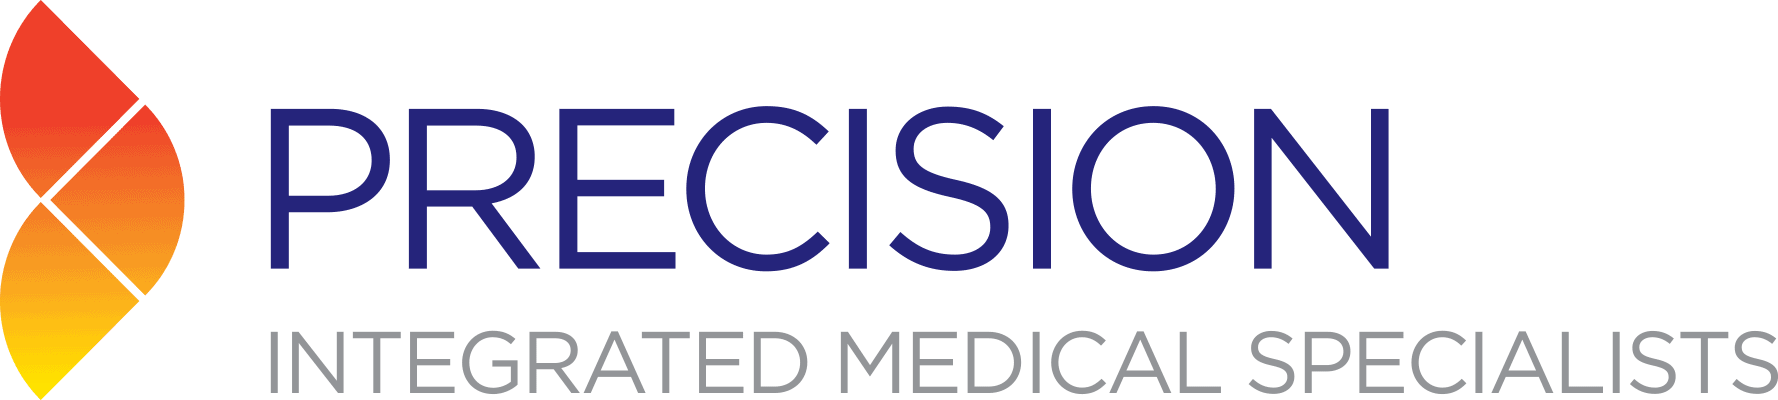 Precision Integrated Medical Specialists